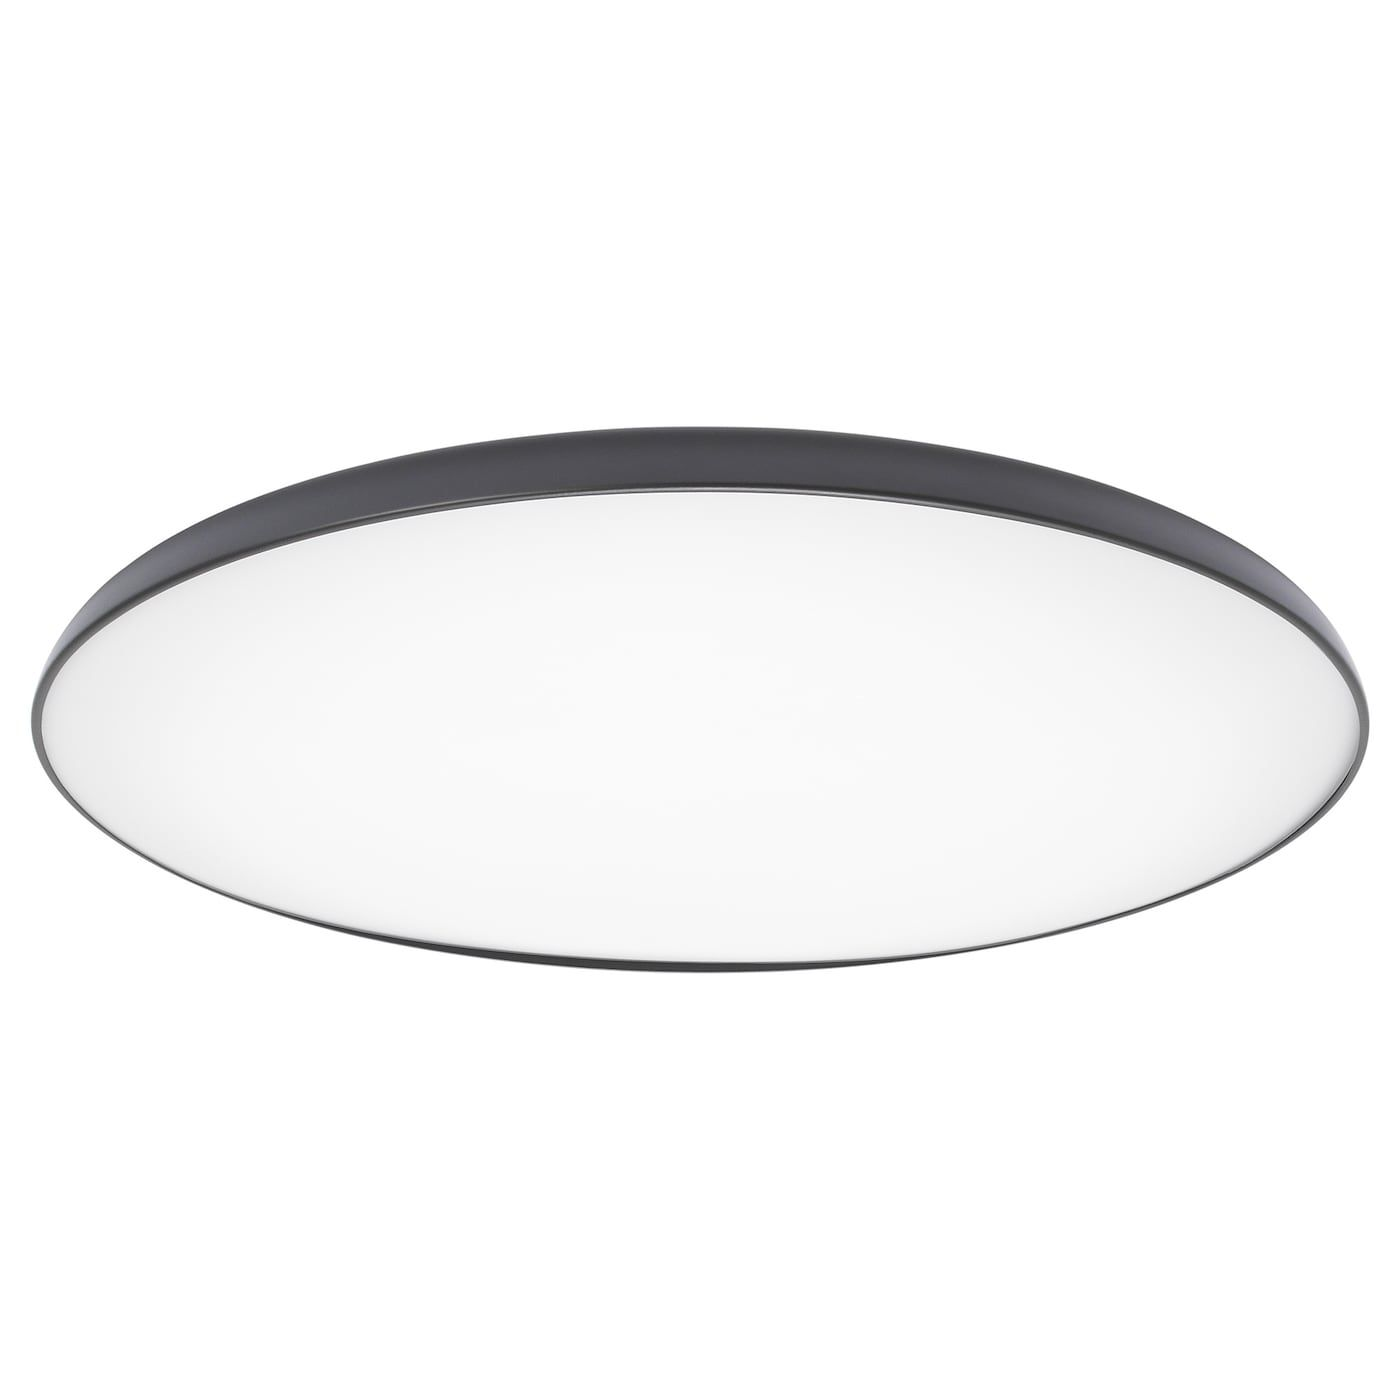 Nymane Led Ceiling Lamp Anthracite In 2020 With Images Ceiling Lamp Led Ceiling Lamp Lamp